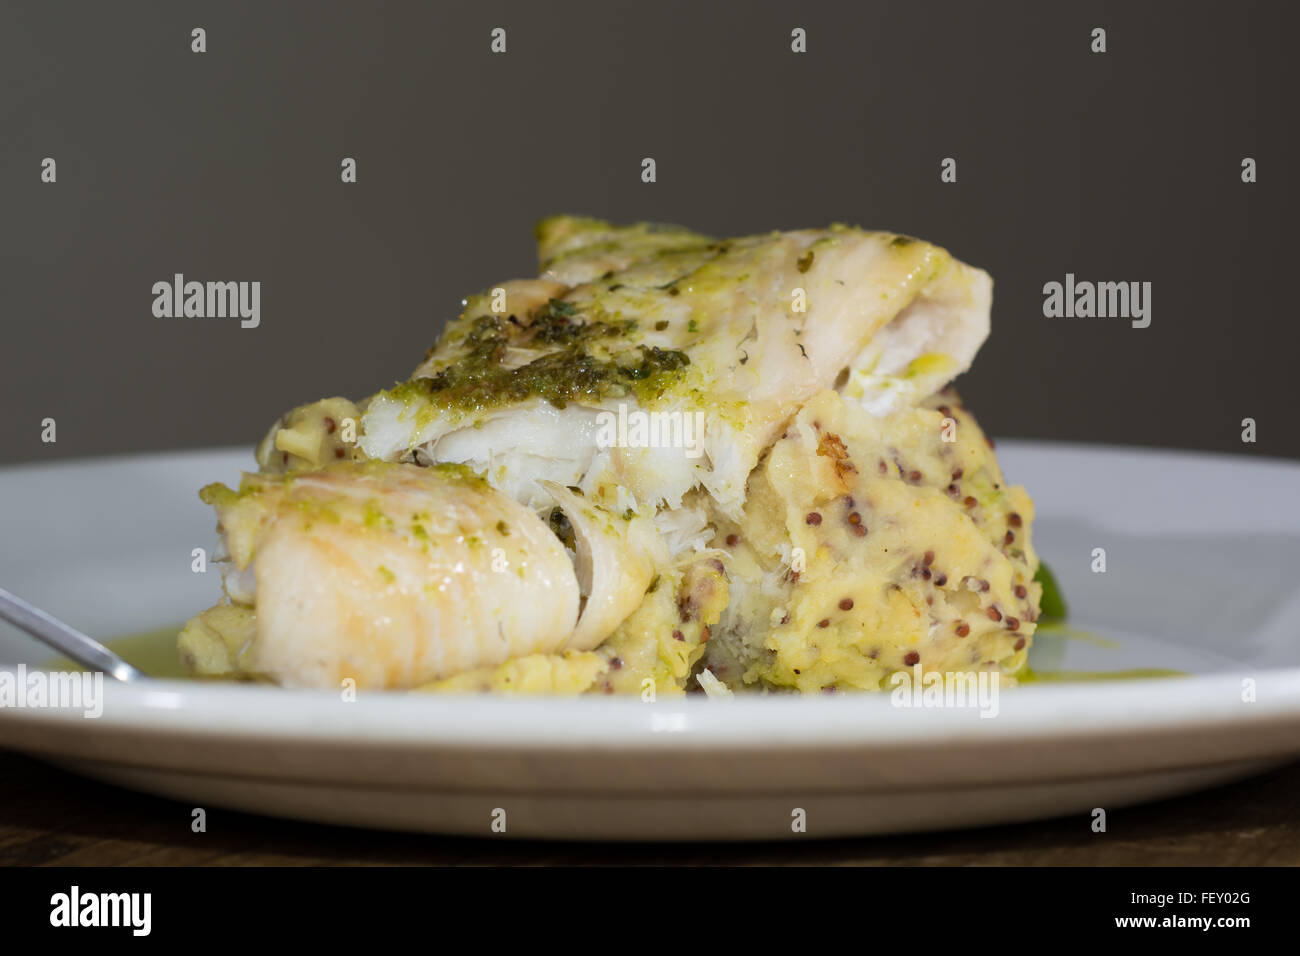 Haddock with whole grain mash and garlic parsley butter. French restaurant prepared fish dish with mashed potato Stock Photo